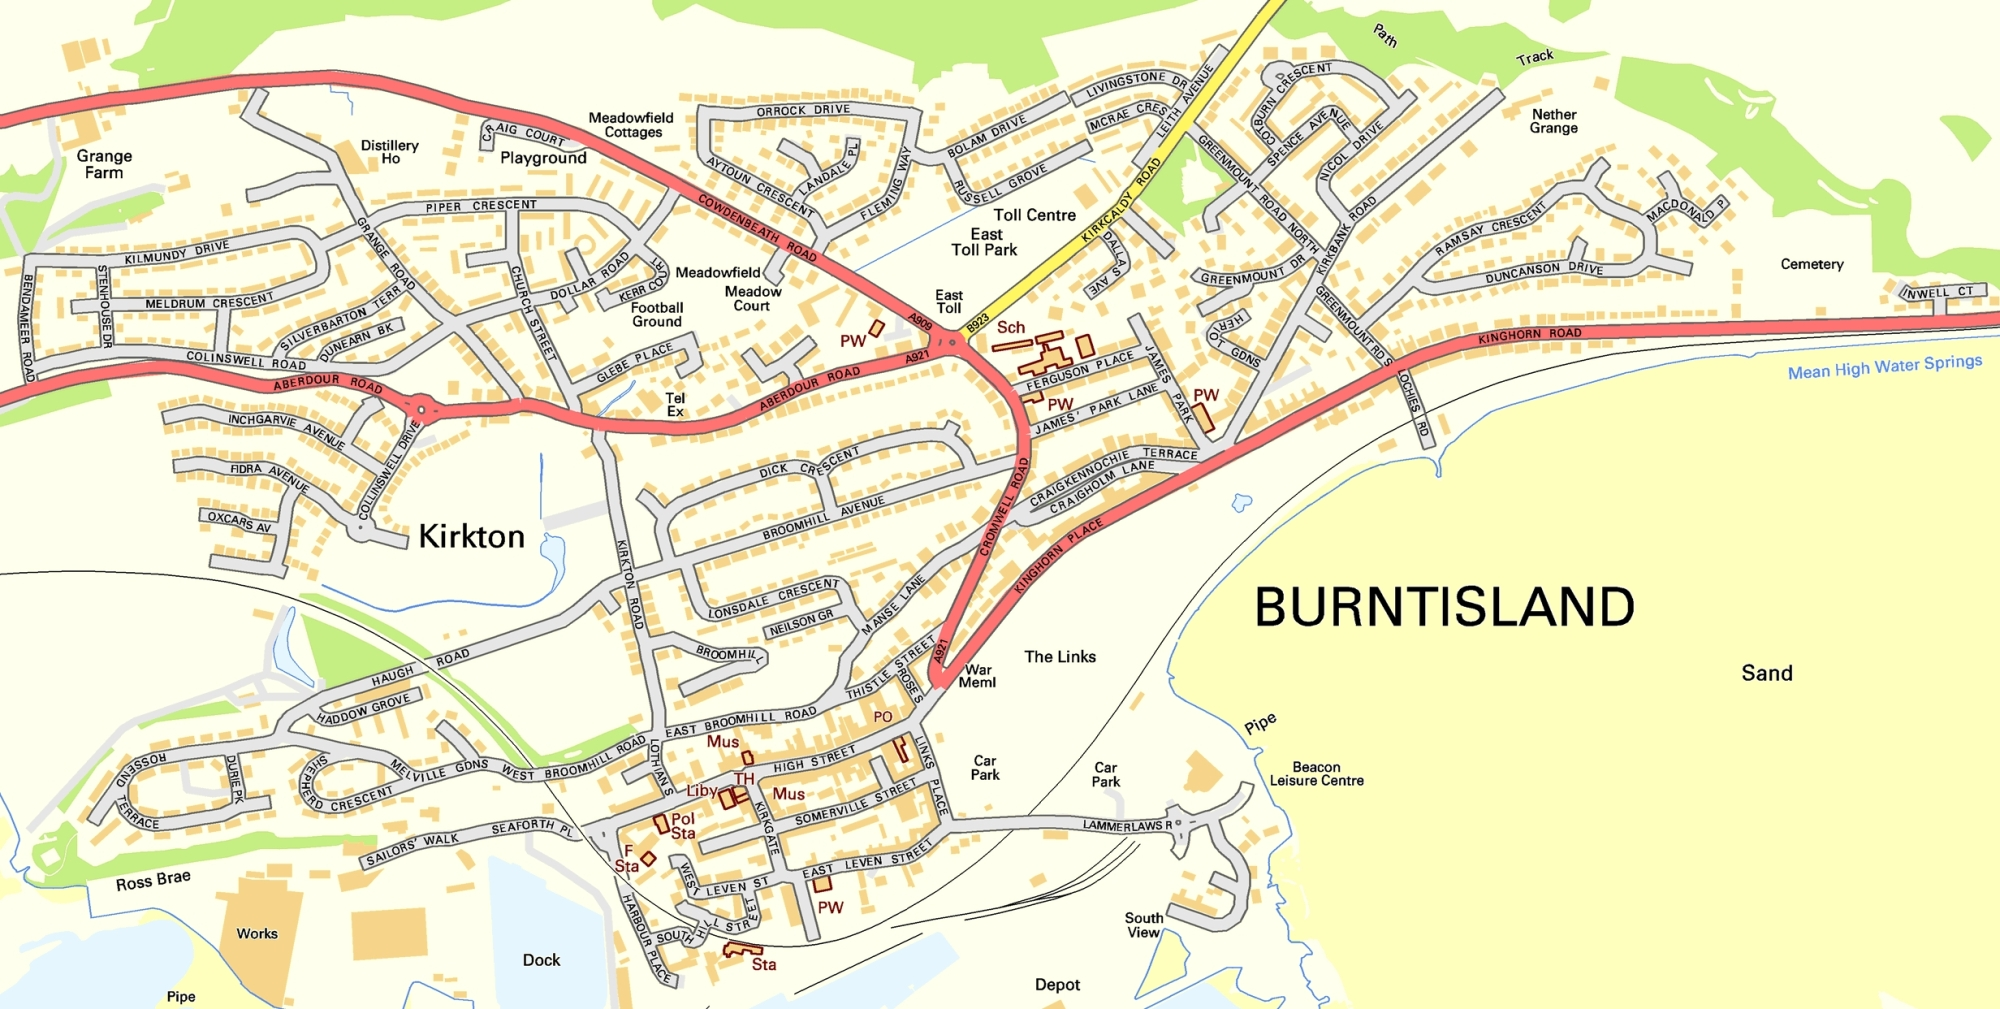 Burntisland streets (large scale)